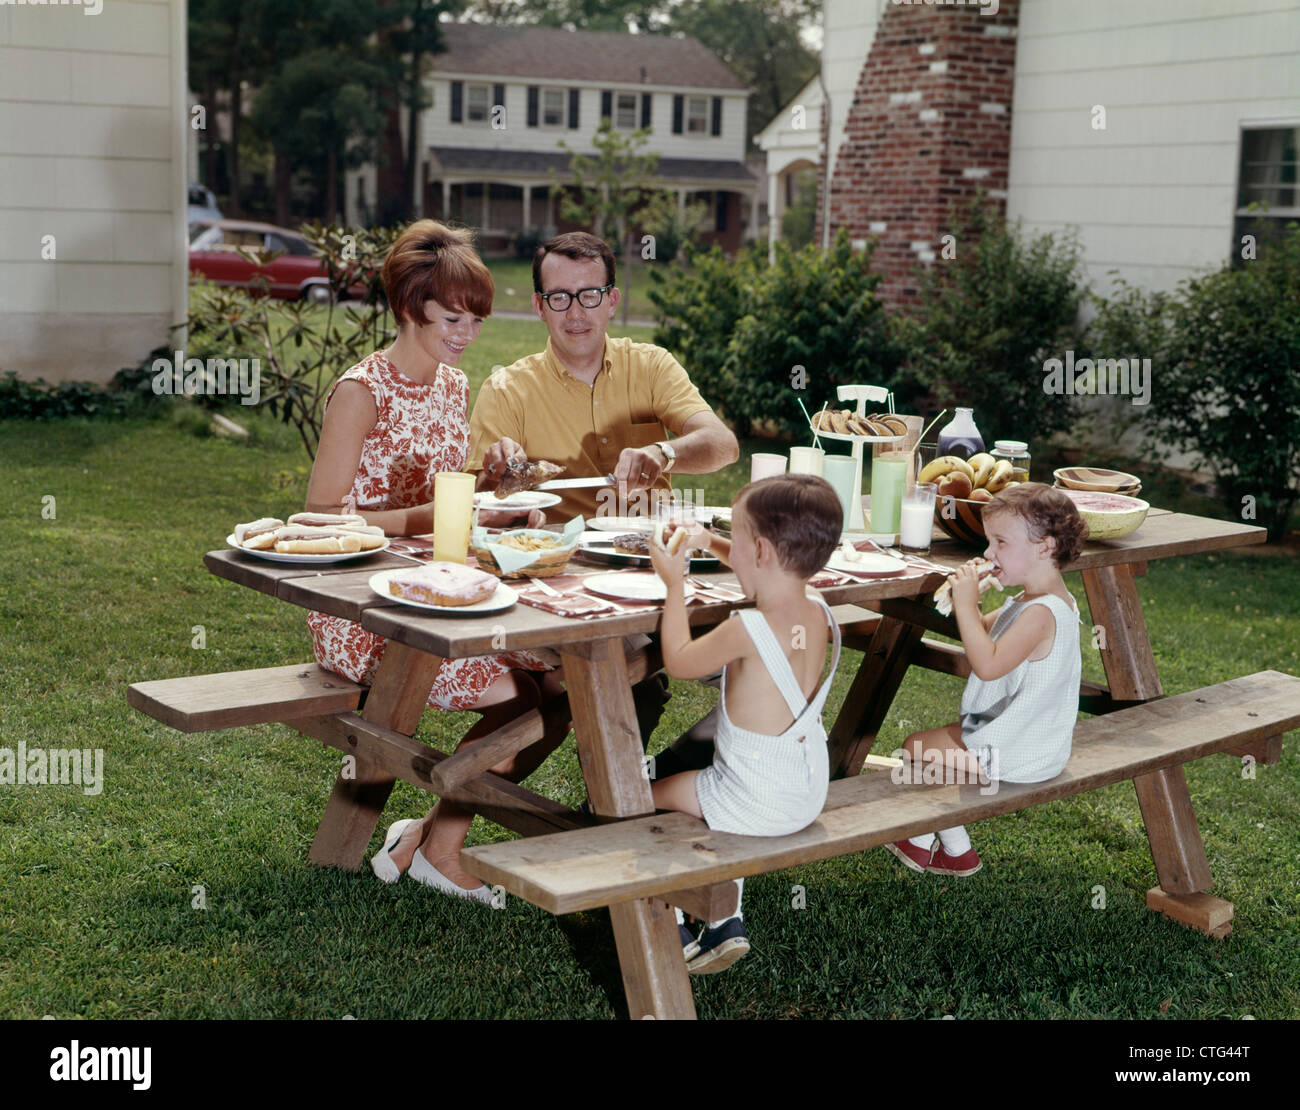 Backyard Picnic 1960s family of four at backyard picnic table stock photo: 49526984